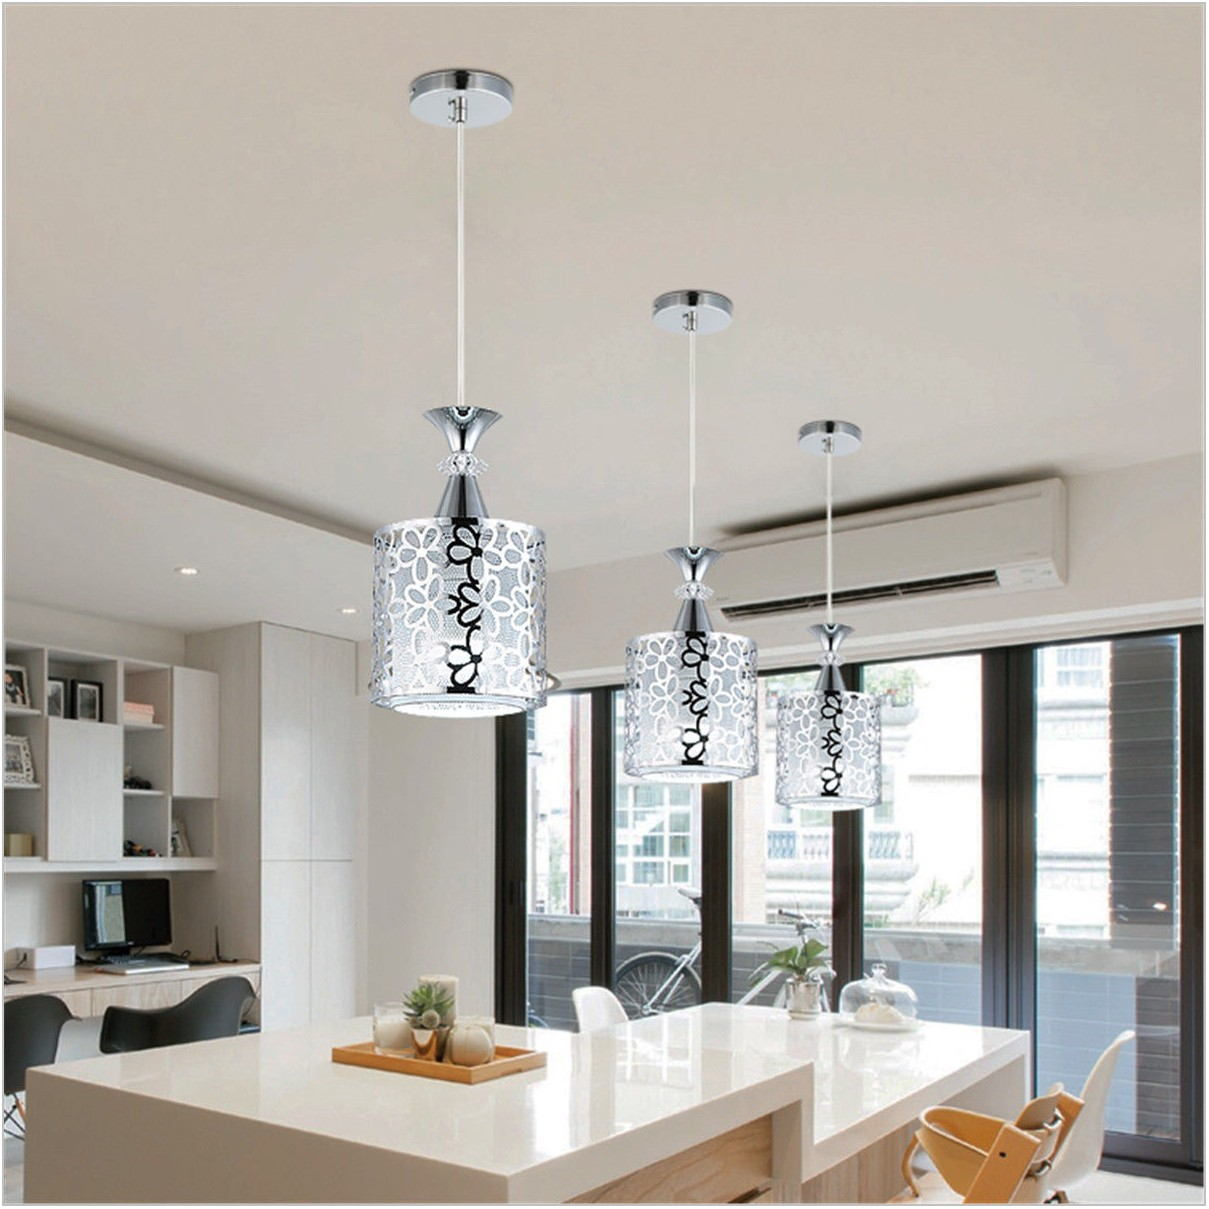 Linear Lighting For Dining Room